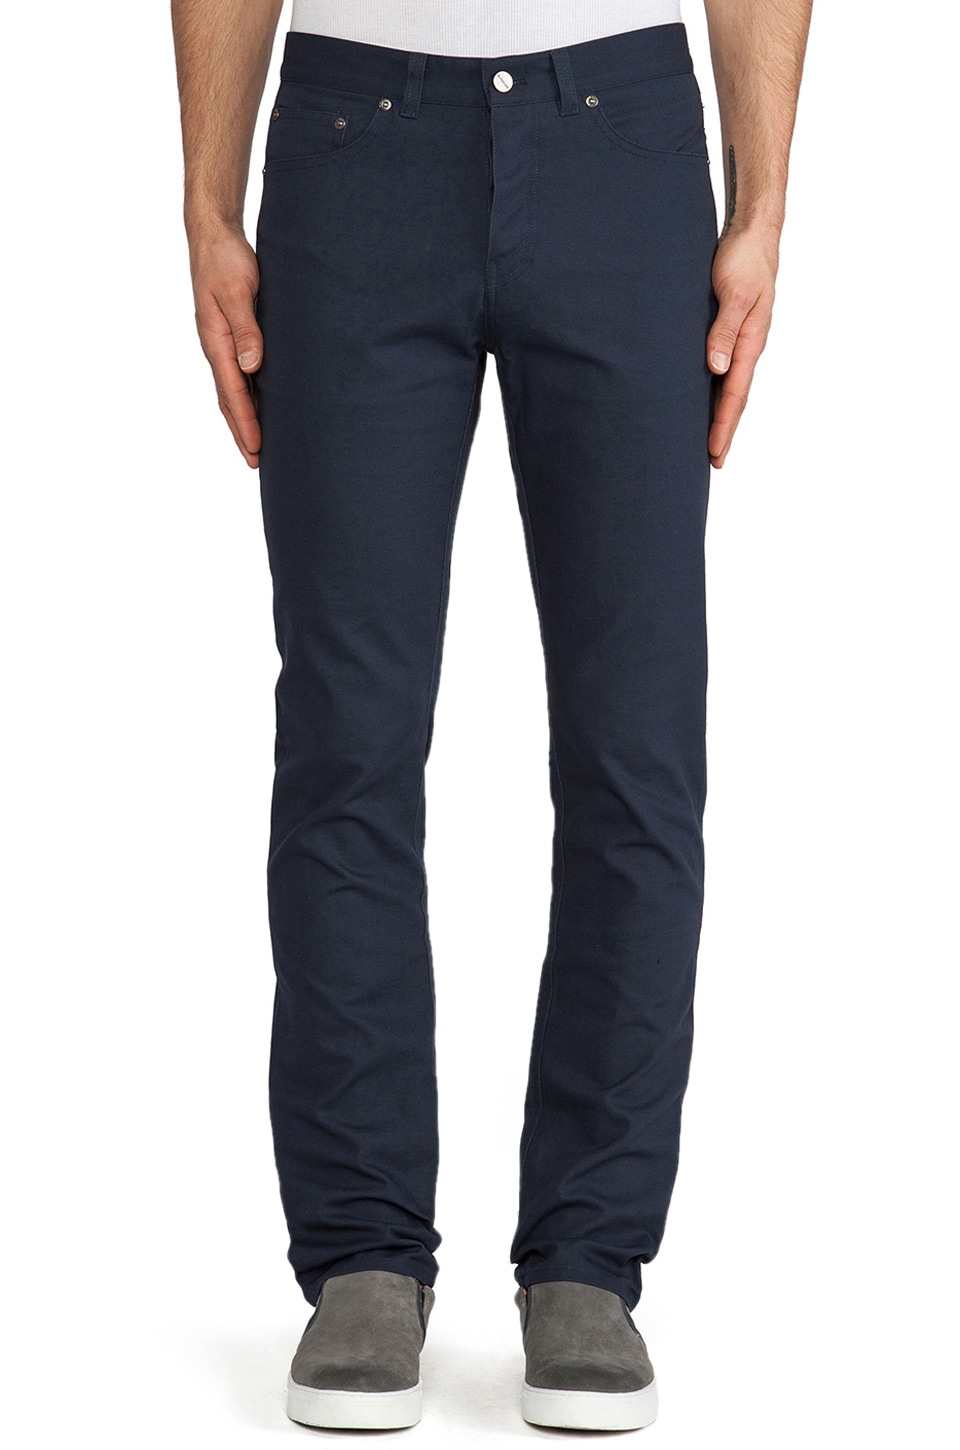 SATURDAYS NYC Ronnie 5 Pocket Pant in Navy